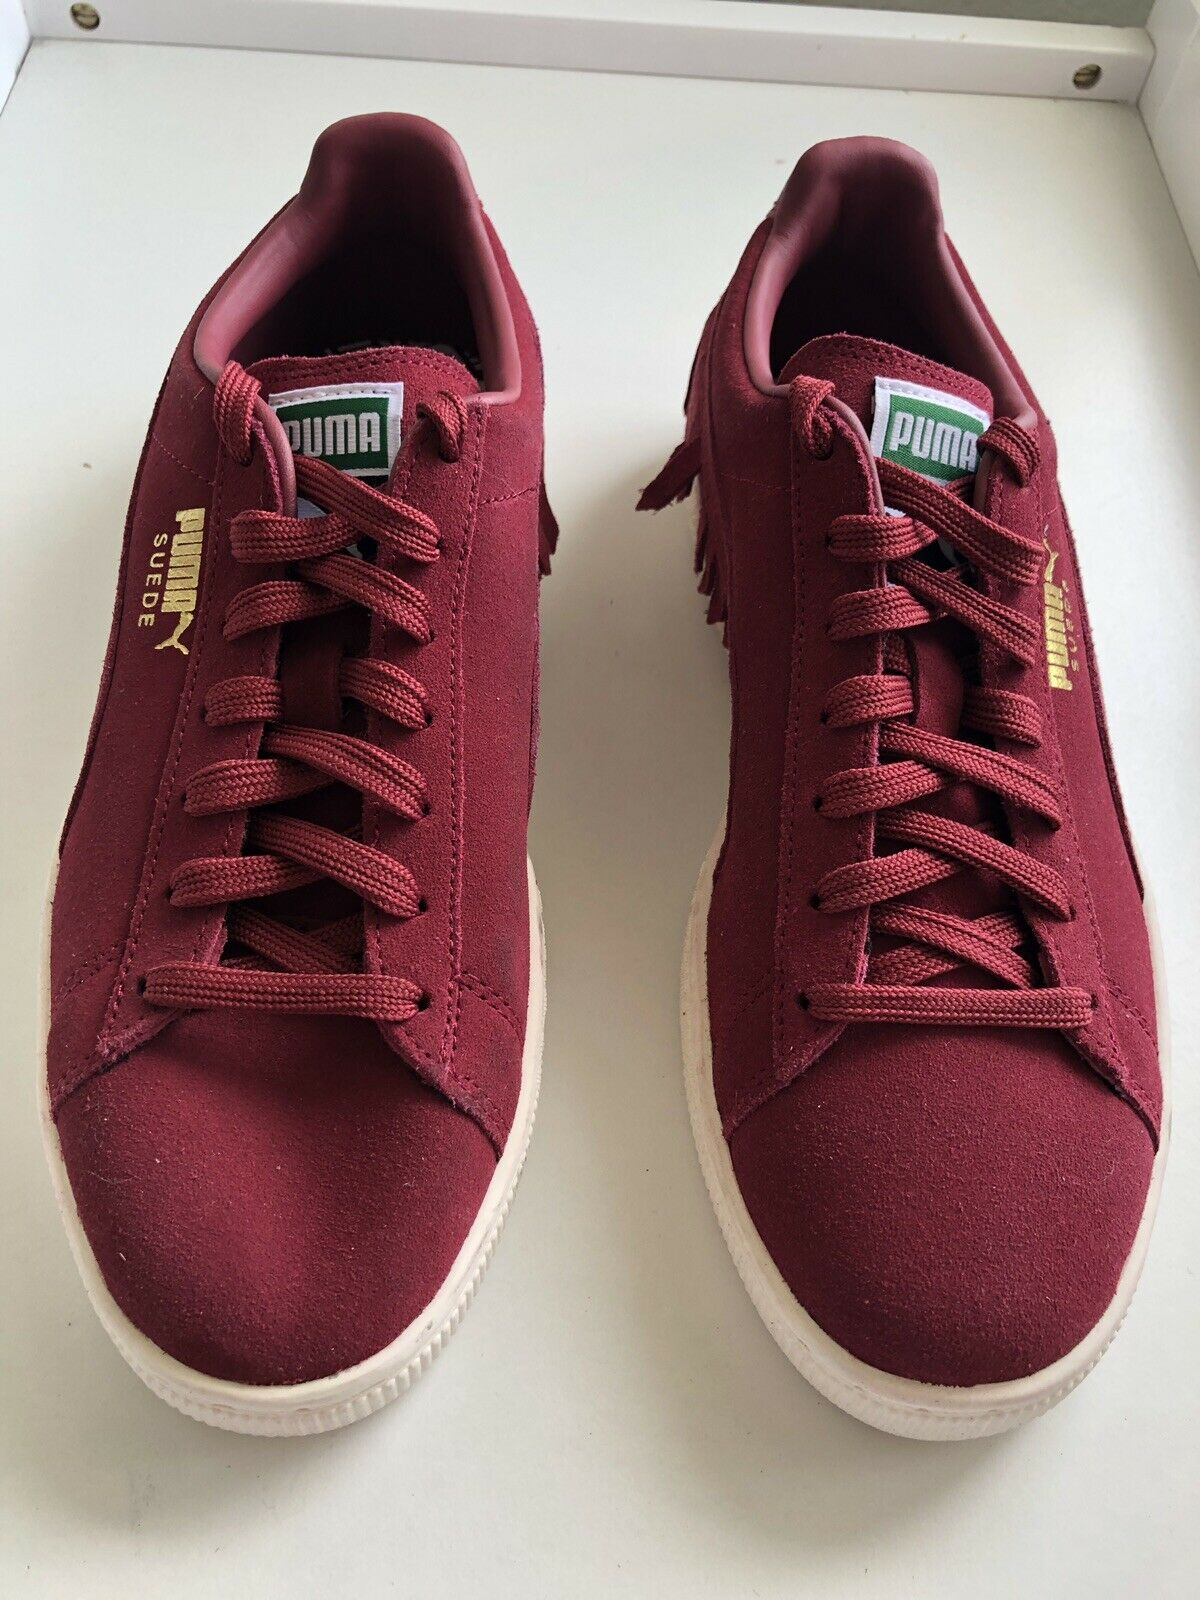 PUMA Woman's Red Burgundy Suede Fringe Sneakers Sz 9